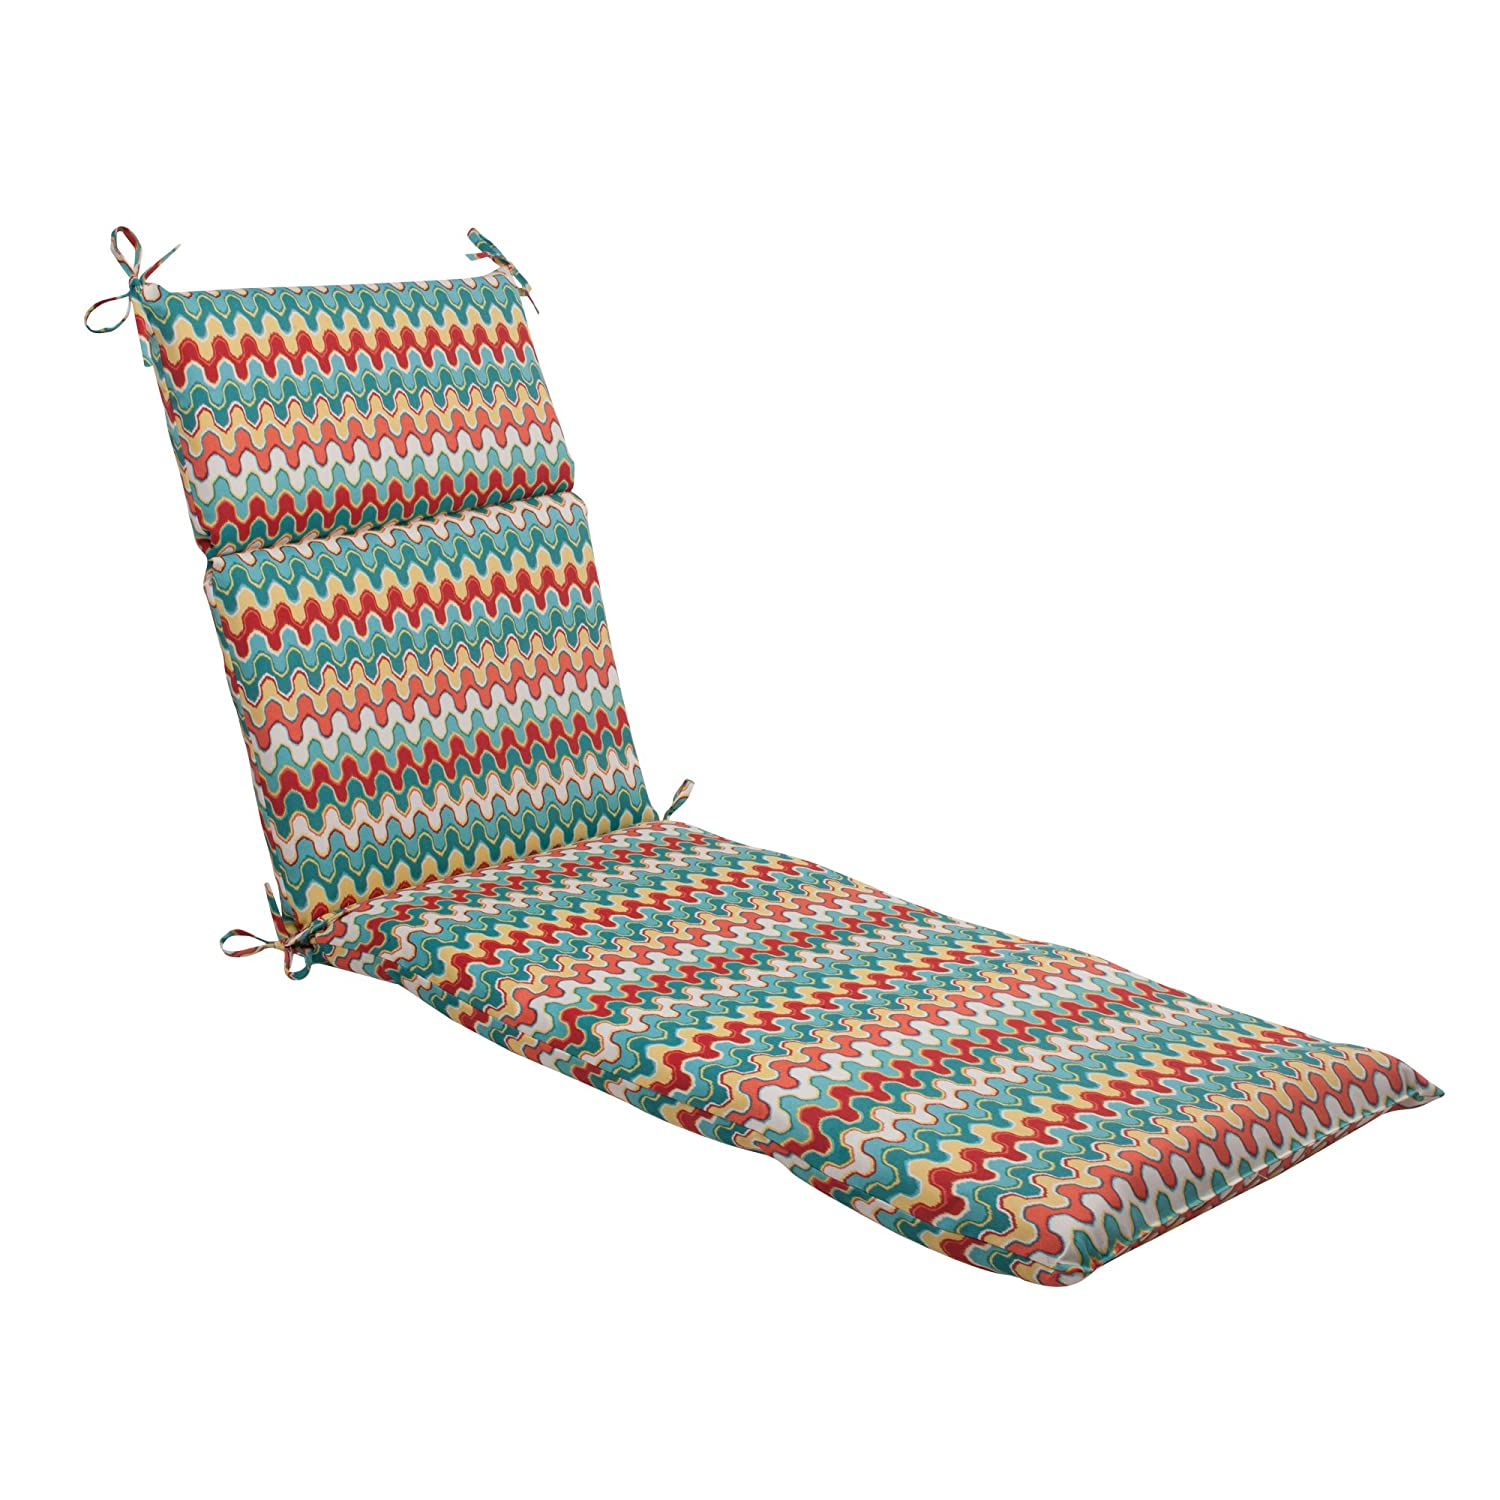 Pillow Perfect Indoor//Outdoor Bosco Chaise Lounge Cushion Navy